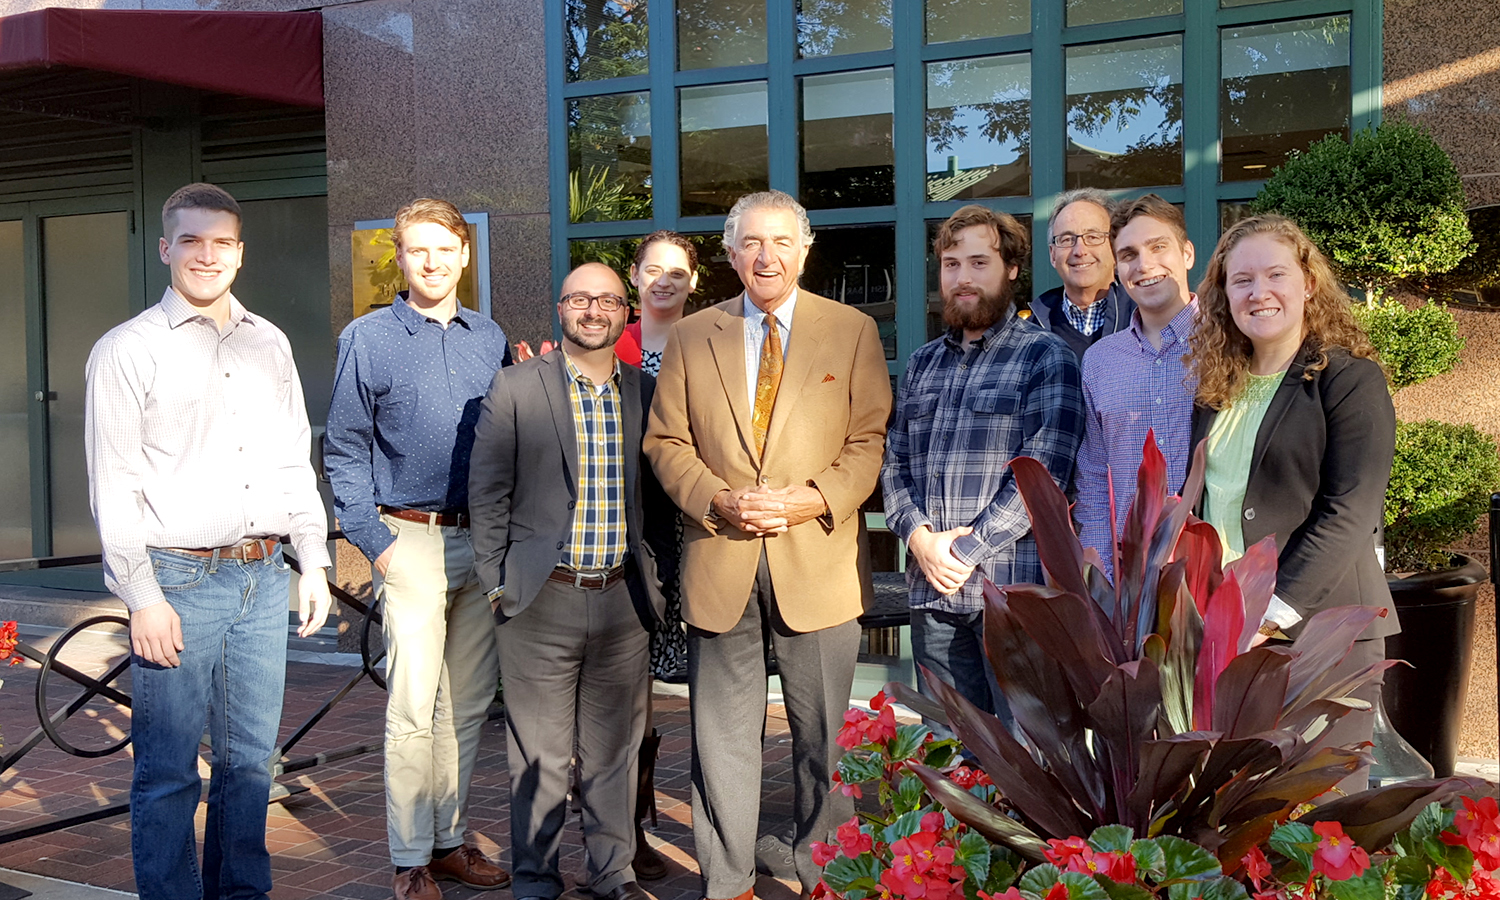 Chair of the Board of Trustees Tom Bozzuto '68 (middle) gathers with HWS students, faculty, and staff attending the Association for Advancement of Sustainability in Higher Education in Baltimore, MD.